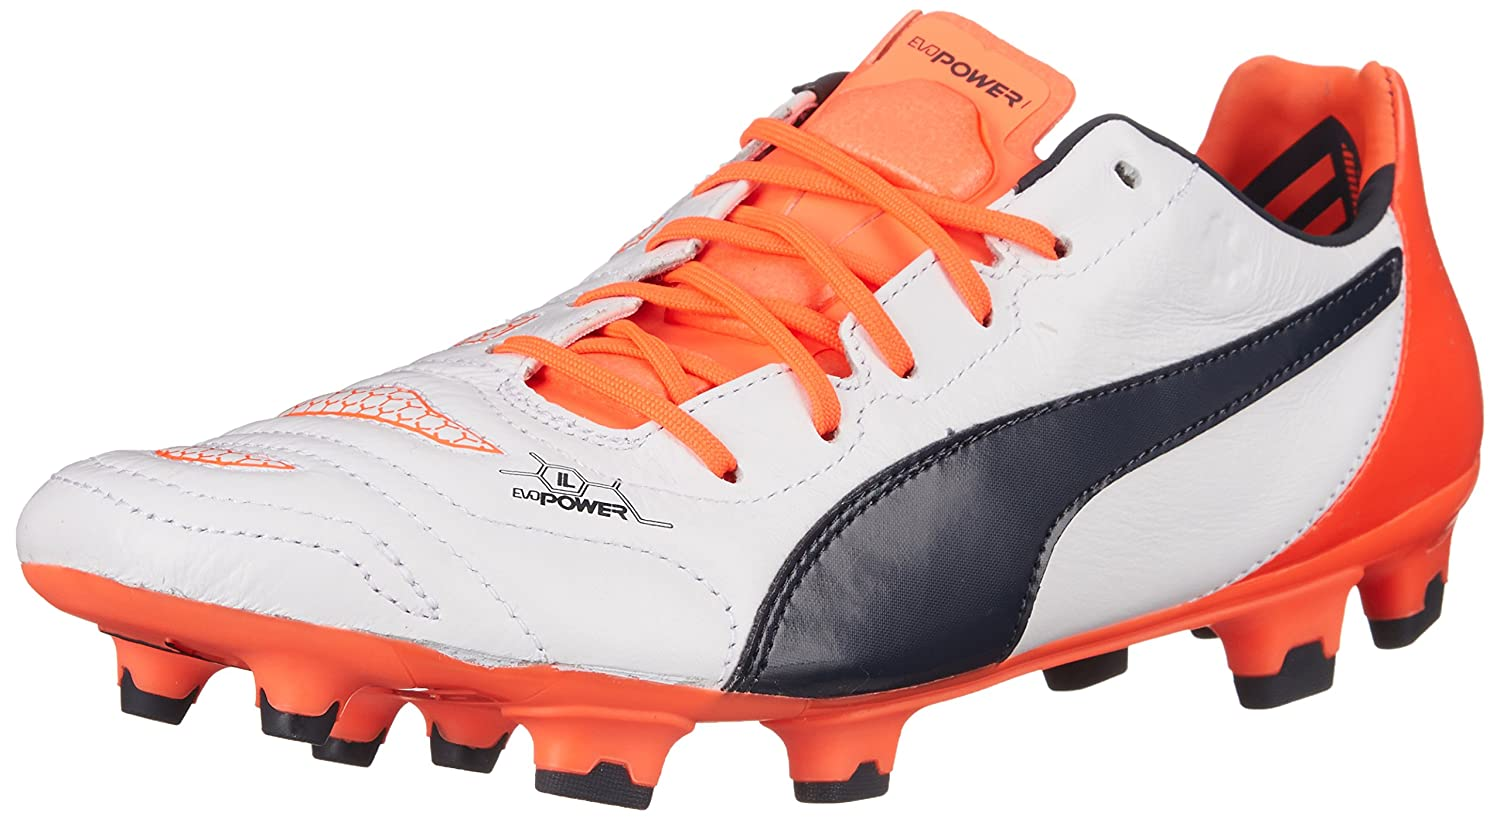 PUMA メンズ B00QIZYENU 8.5 M US|White/Total Eclipse/Lava Blast White/Total Eclipse/Lava Blast 8.5 M US